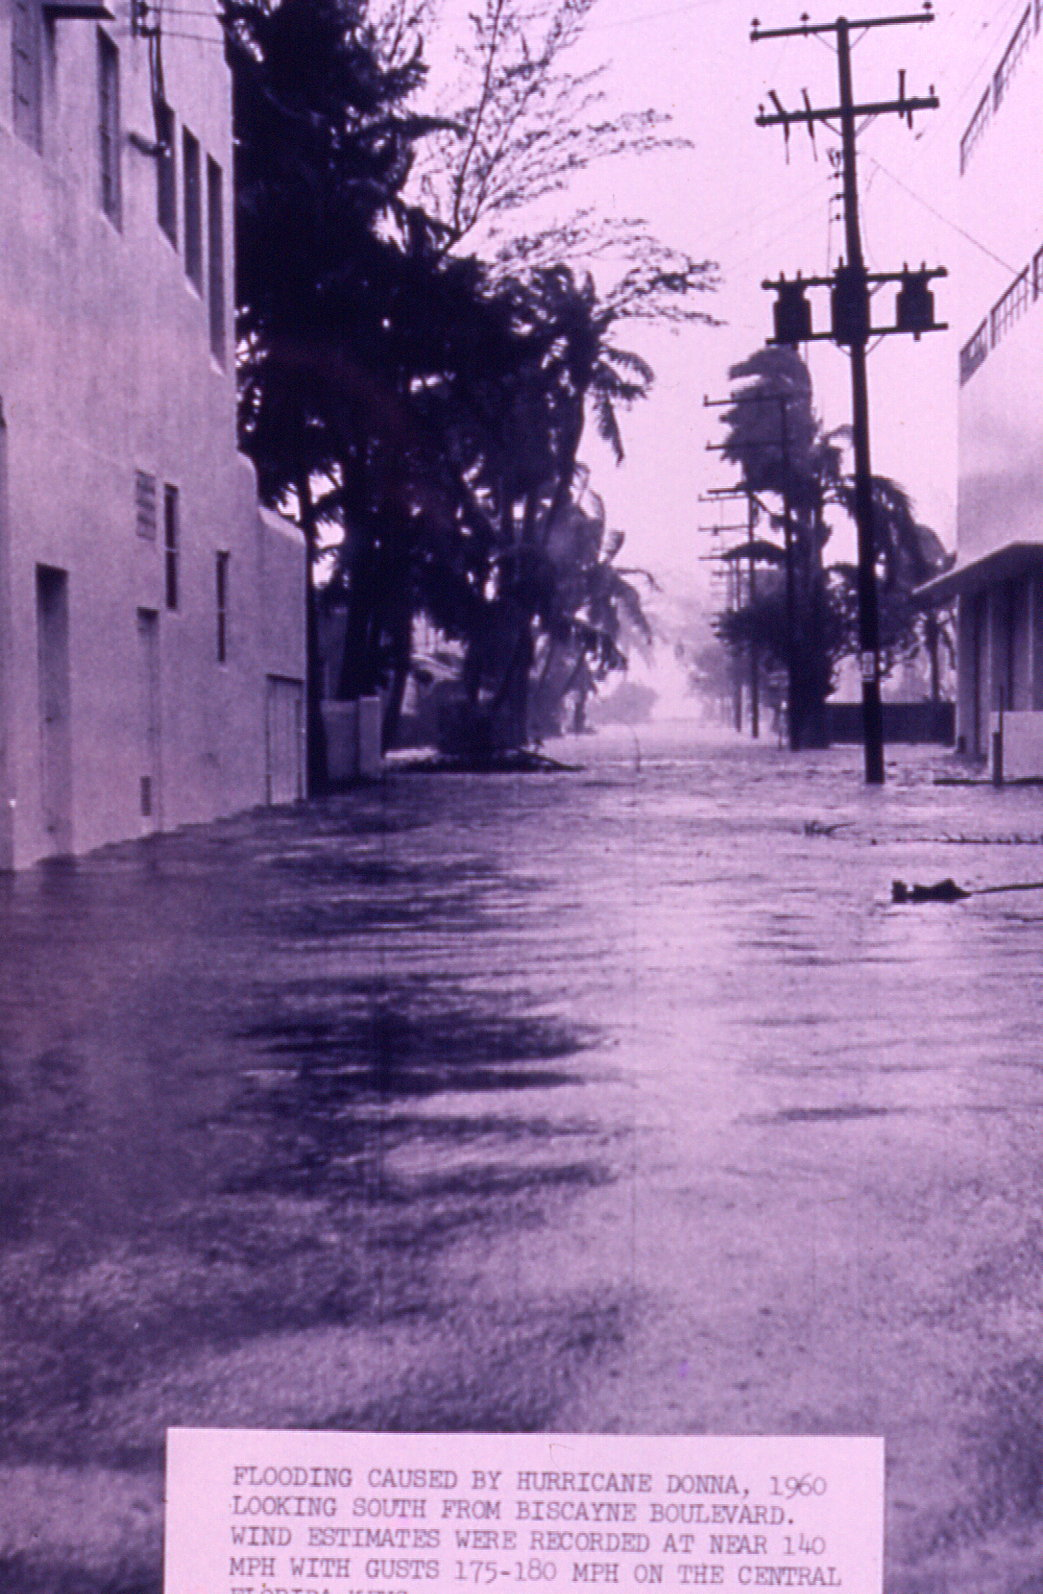 Biscayne Boulevard in Miami during Donna